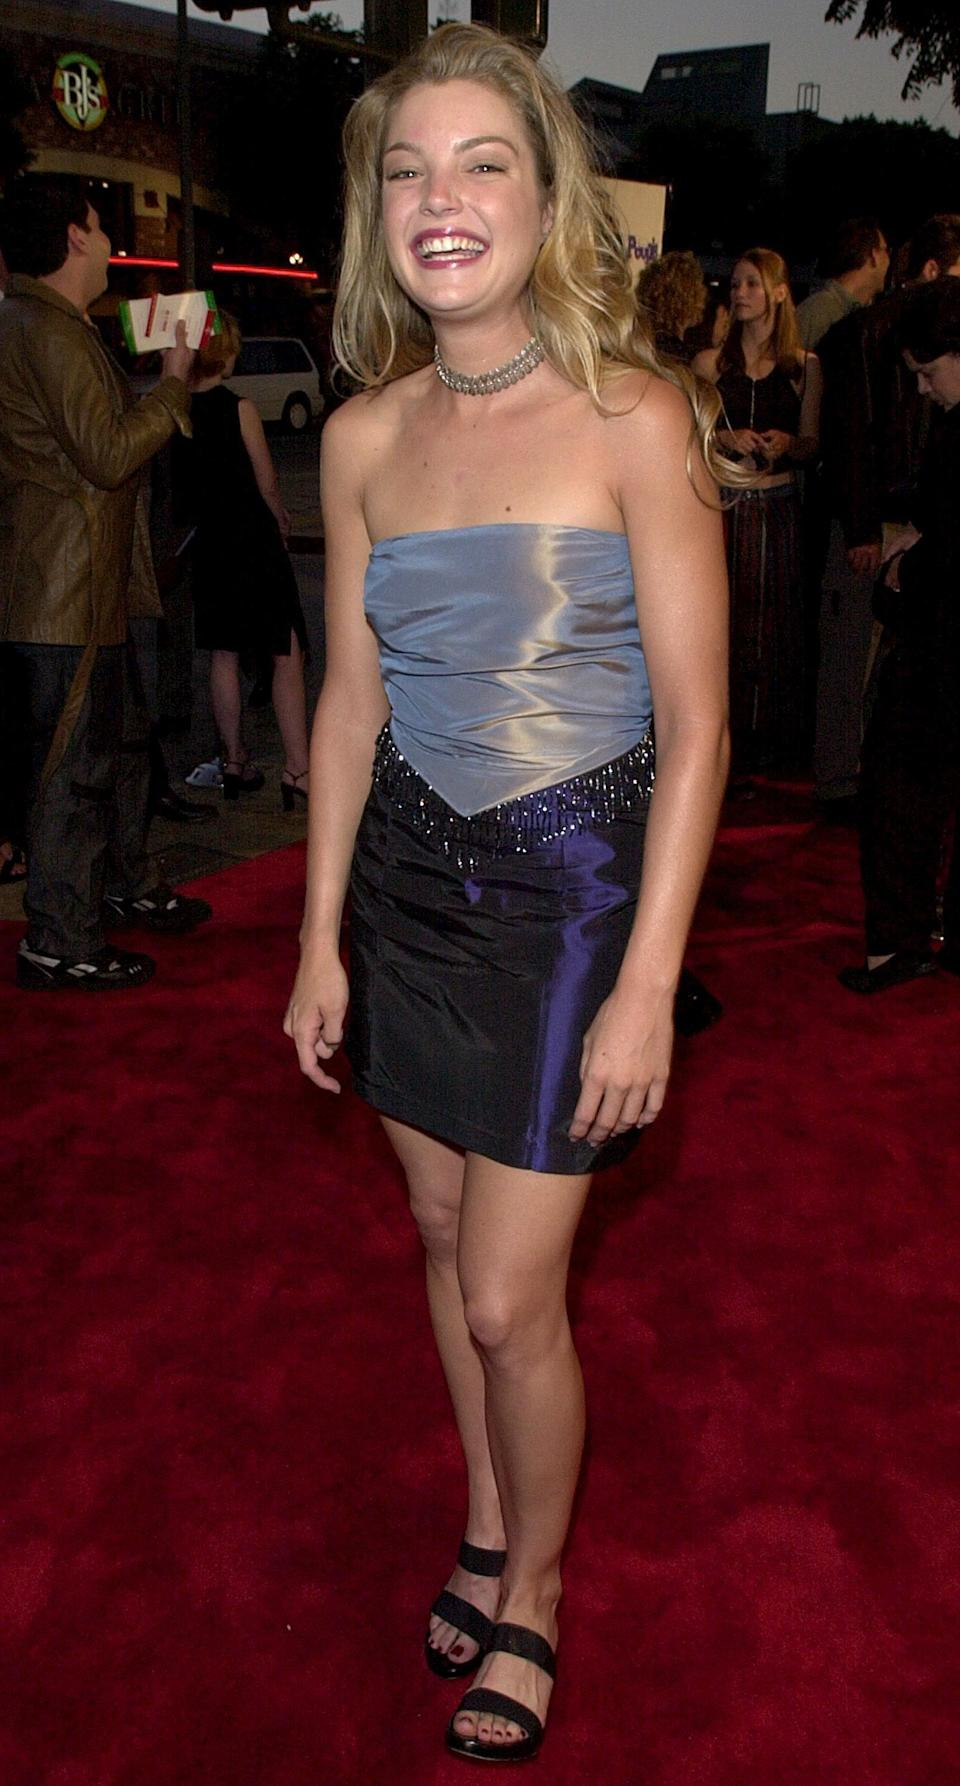 <p>Clare, a fellow Toro, played Courtney in <b>Bring It On</b>, who had a bold personality - just like this red carpet look. Clare's satin, jewel-toned separates came complete with a beaded fringe hem to match her choker, and she wore easy, black strappy sandals.</p>